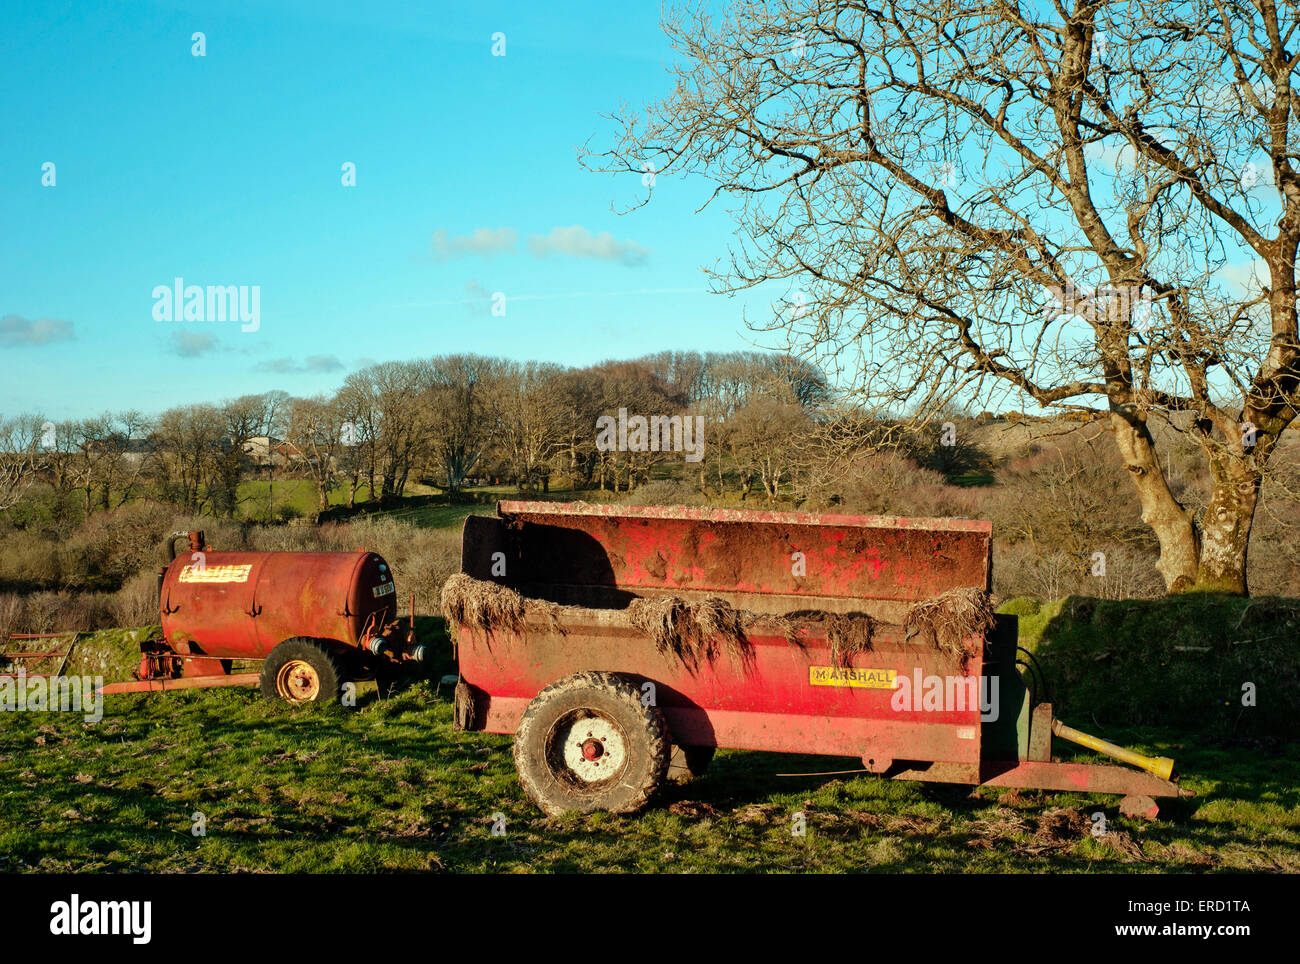 tractor, manure, muck spreader, silage, farming,  farm, cow, dung, odor, control, cultivated, land, soil, tank, - Stock Image